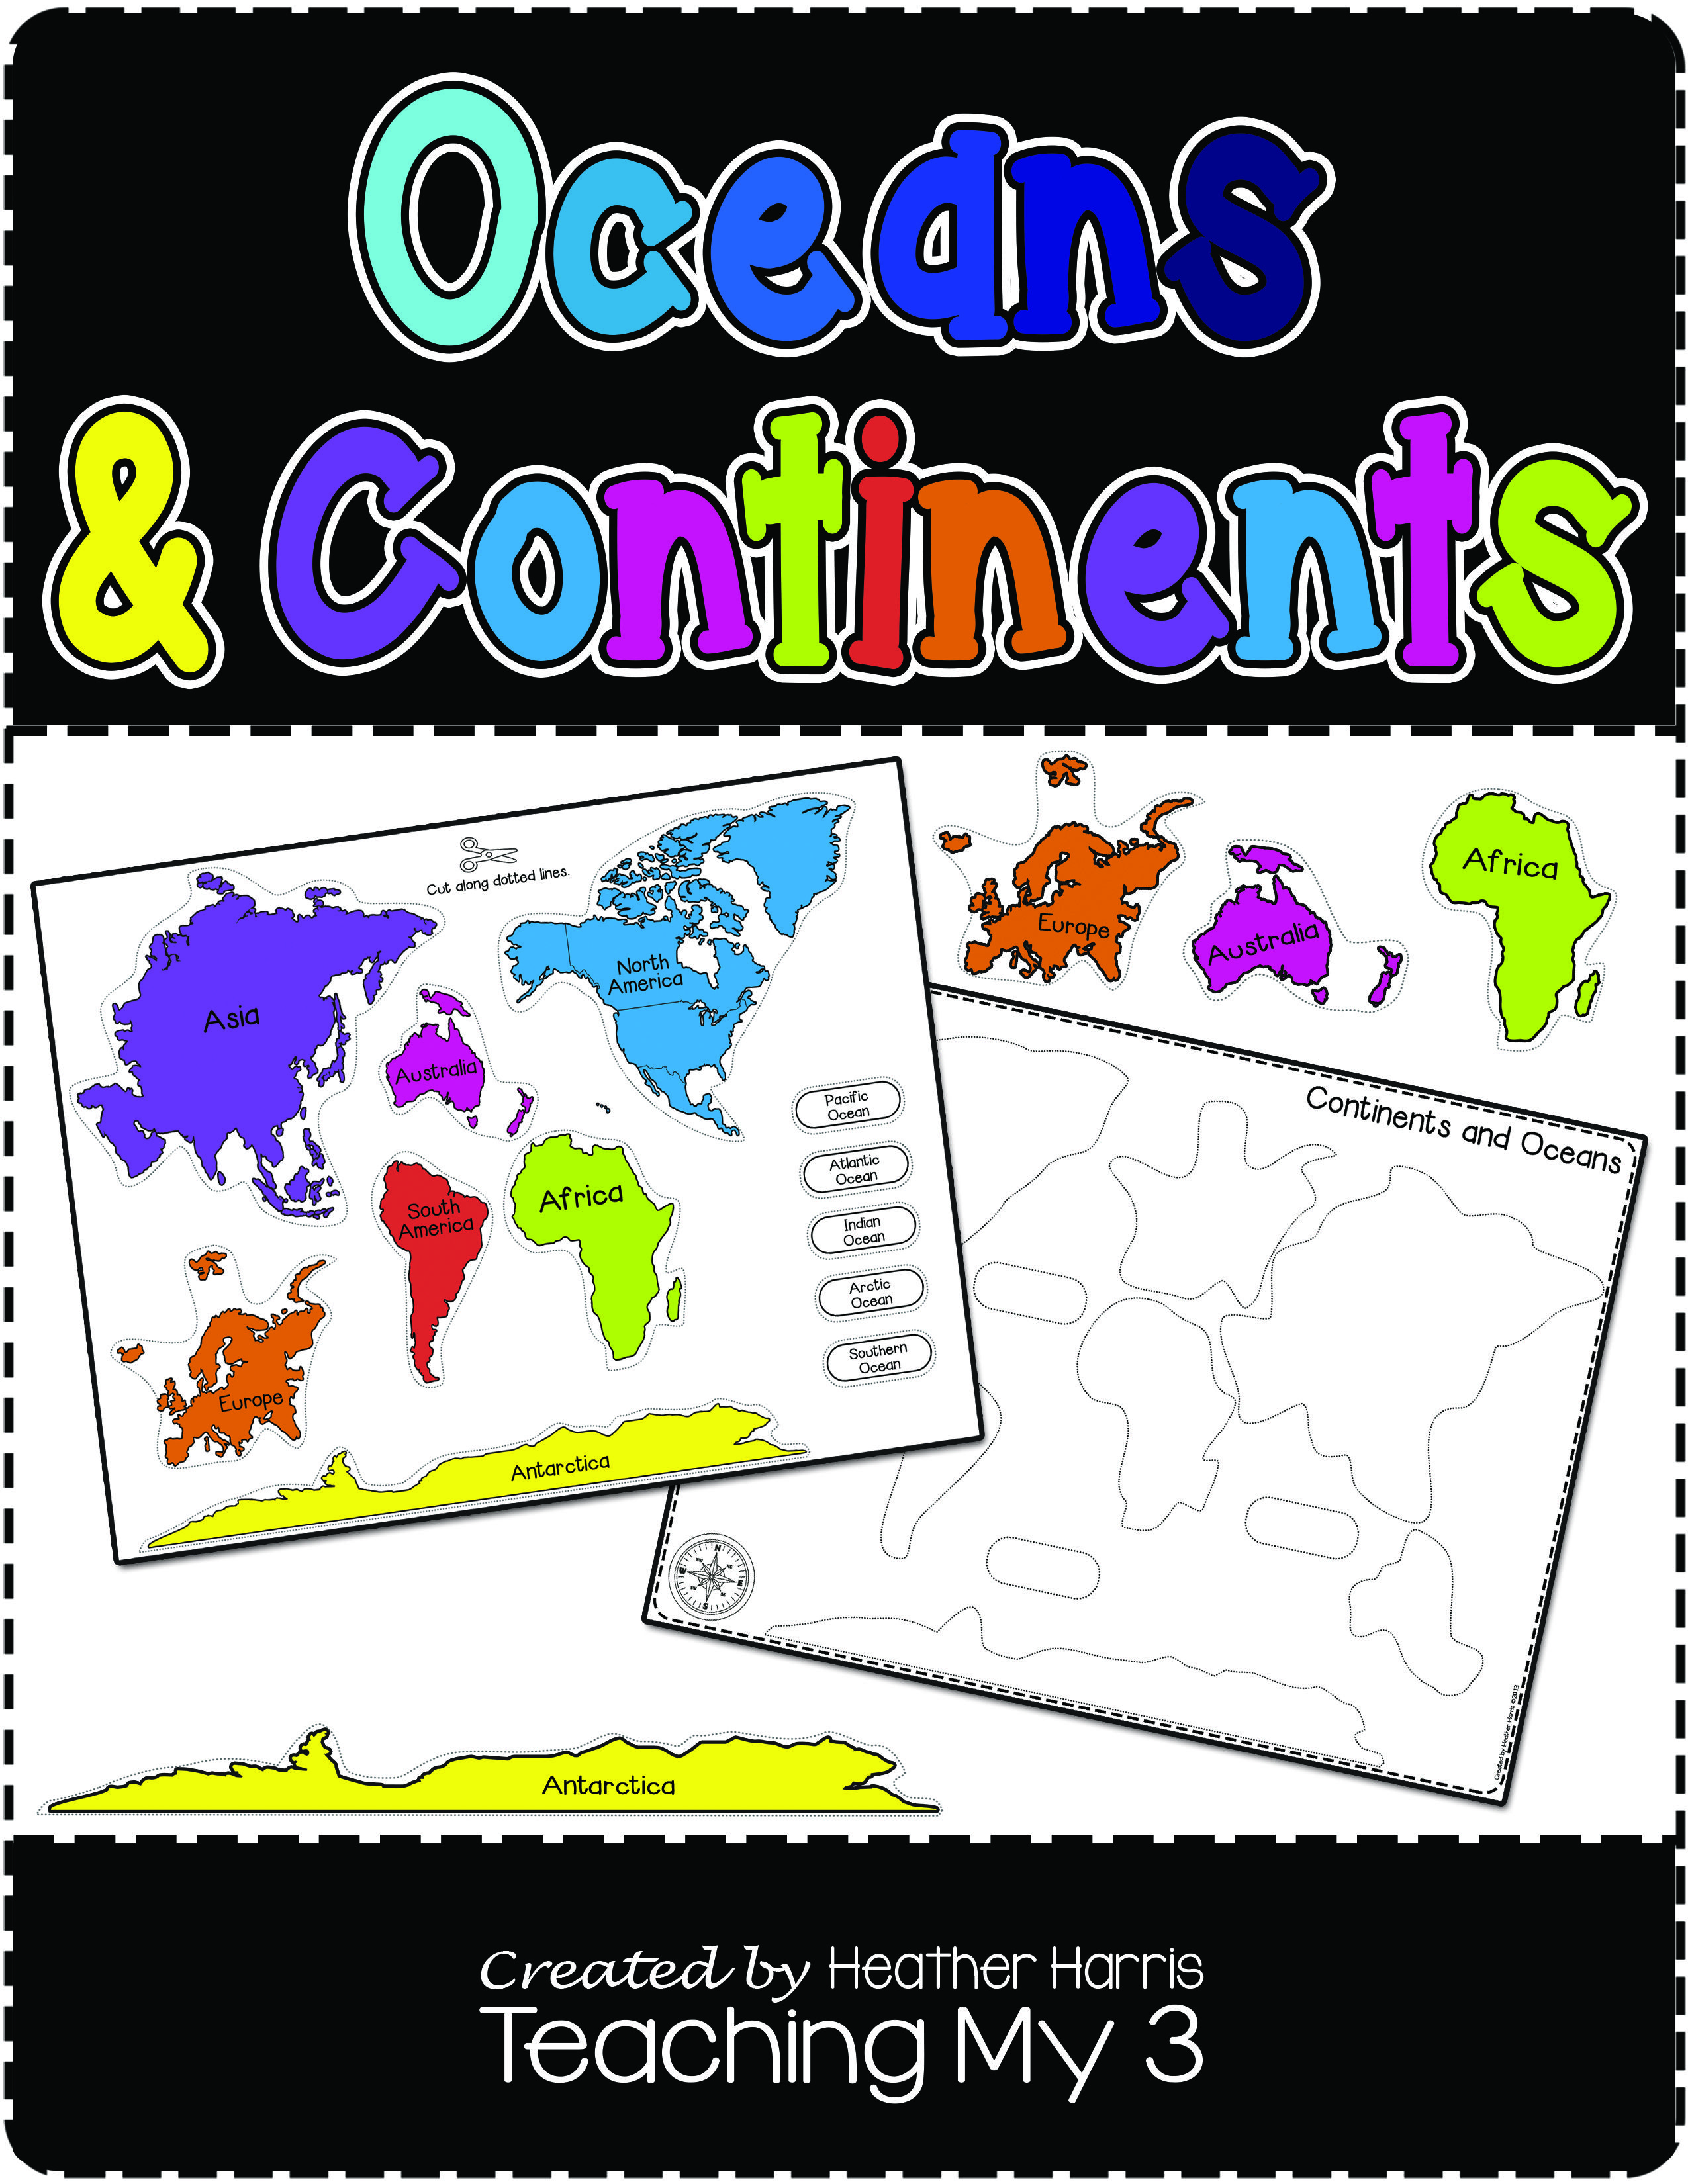 worksheet Continents And Oceans For Kids Worksheets learn continents and oceans with this puzzle worksheets excellent for classical conversations cycle